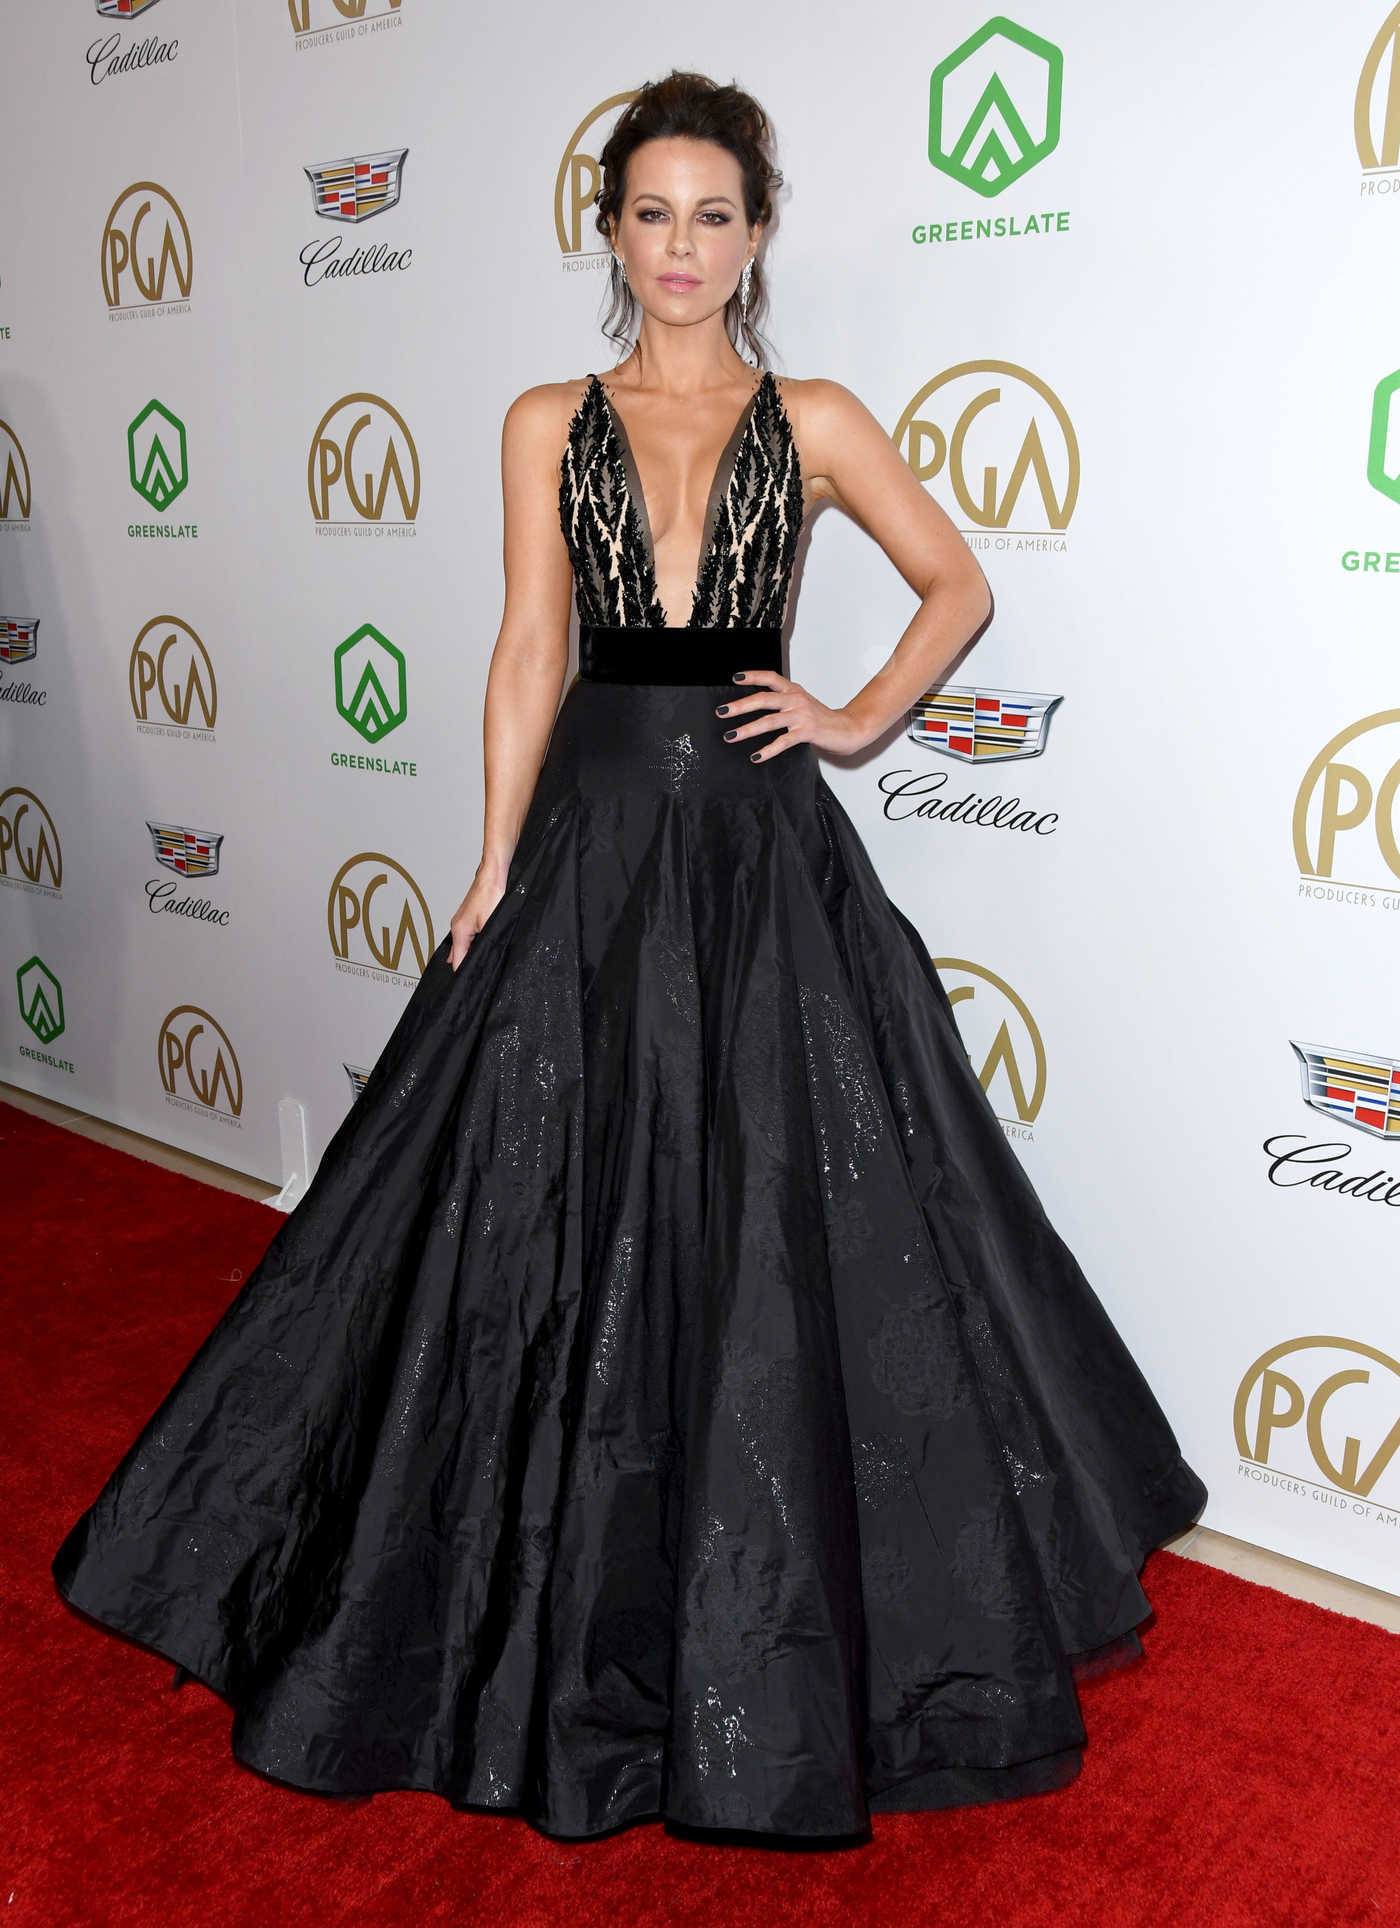 Kate Beckinsale Attends the 30th Annual Producers Guild Awards in Beverly Hills 01/19/2019